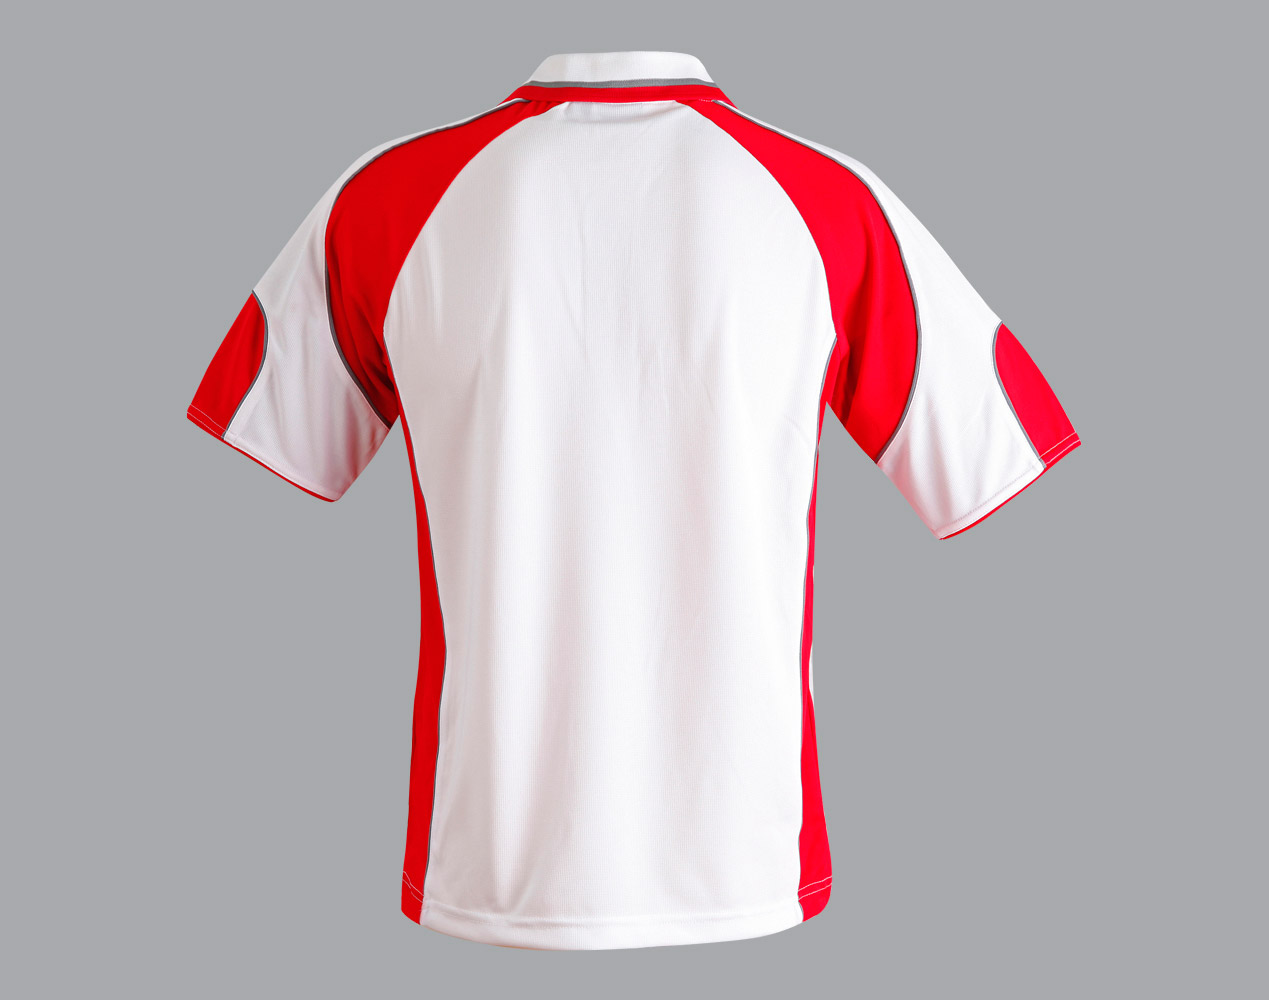 https://s3-ap-southeast-1.amazonaws.com/ws-imgs/POLOSHIRTS/PS61_WhiteRed_Back.jpg